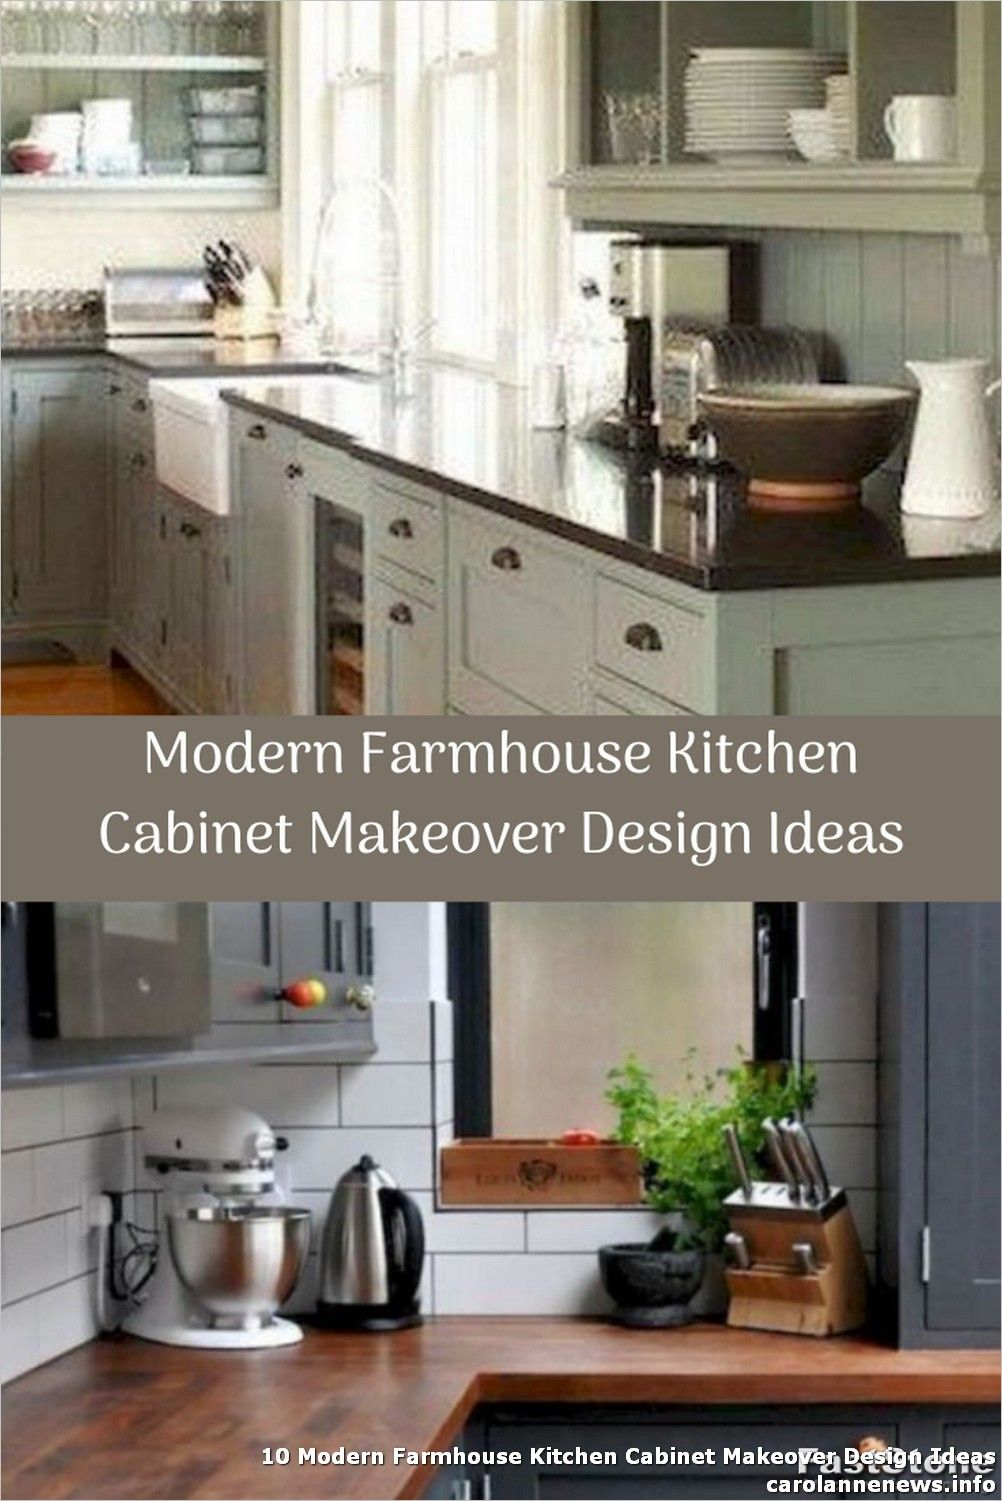 10 Modern Farmhouse Kitchen Cabinet Makeover Design Ideas The Kitchen Addition In 2020 Modern Farmhouse Kitchens Farmhouse Kitchen Cabinets Kitchen Cabinets Makeover